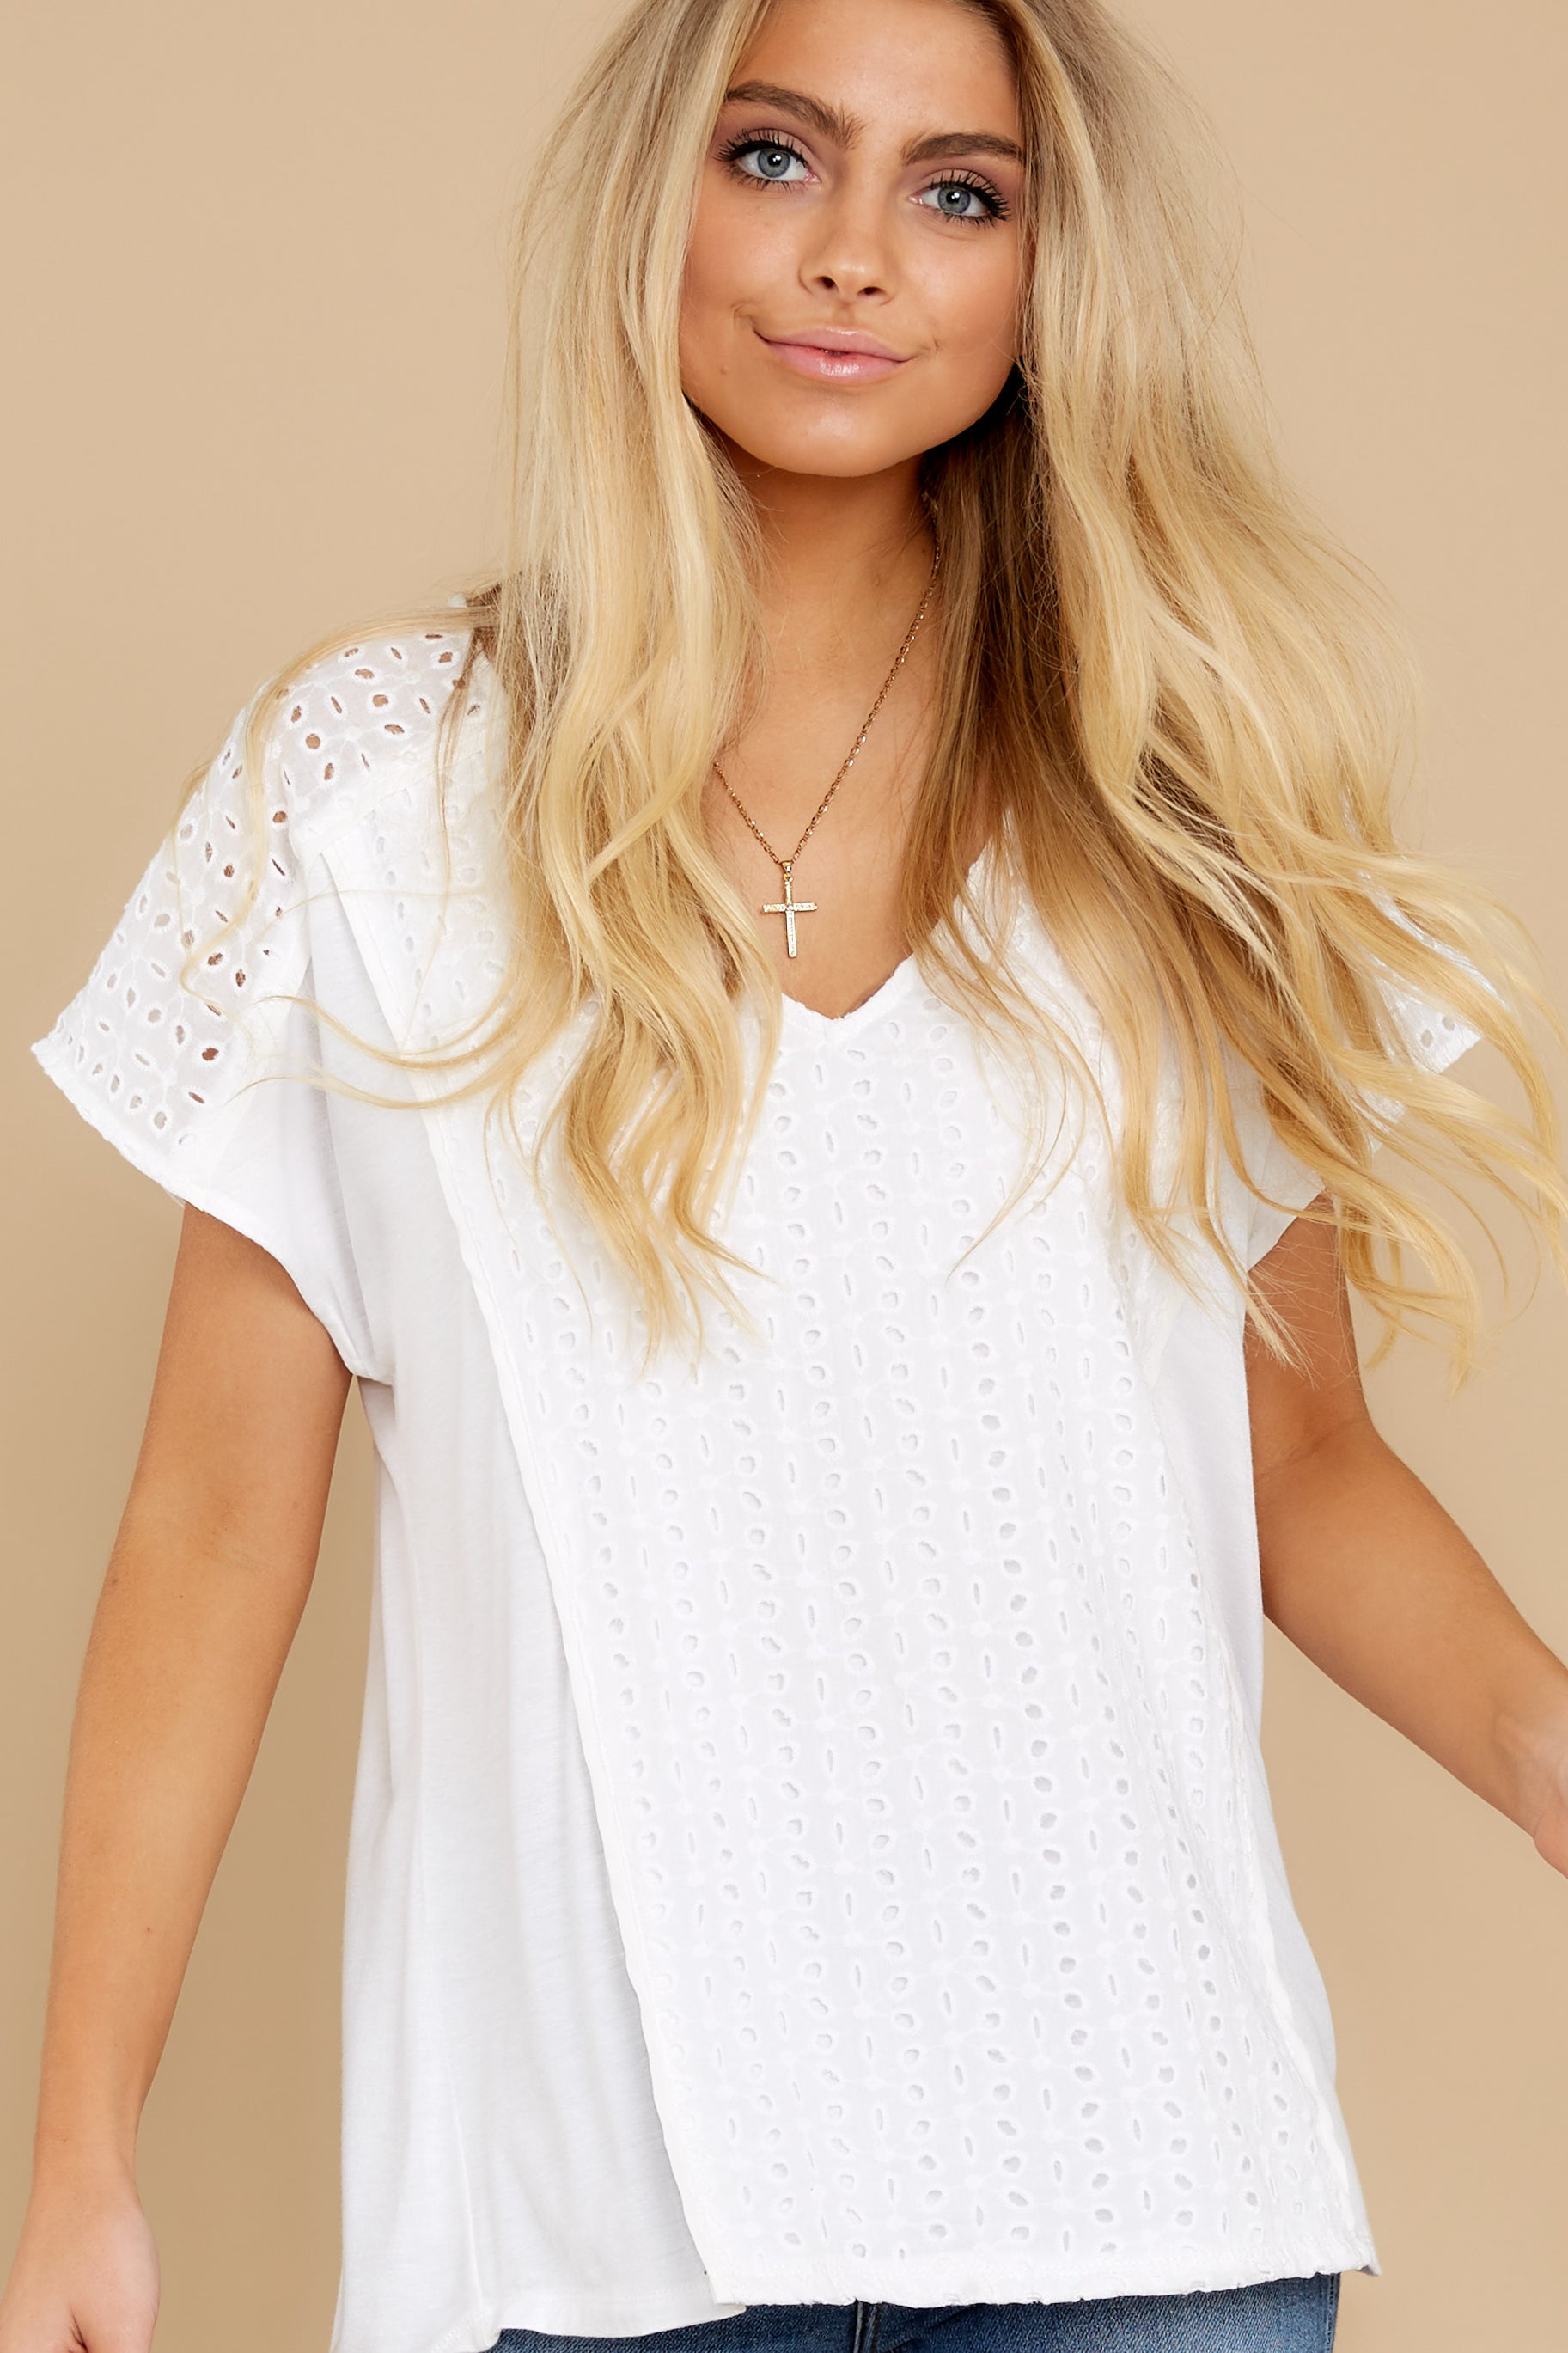 6 All My Time White Eyelet Top at reddress.com